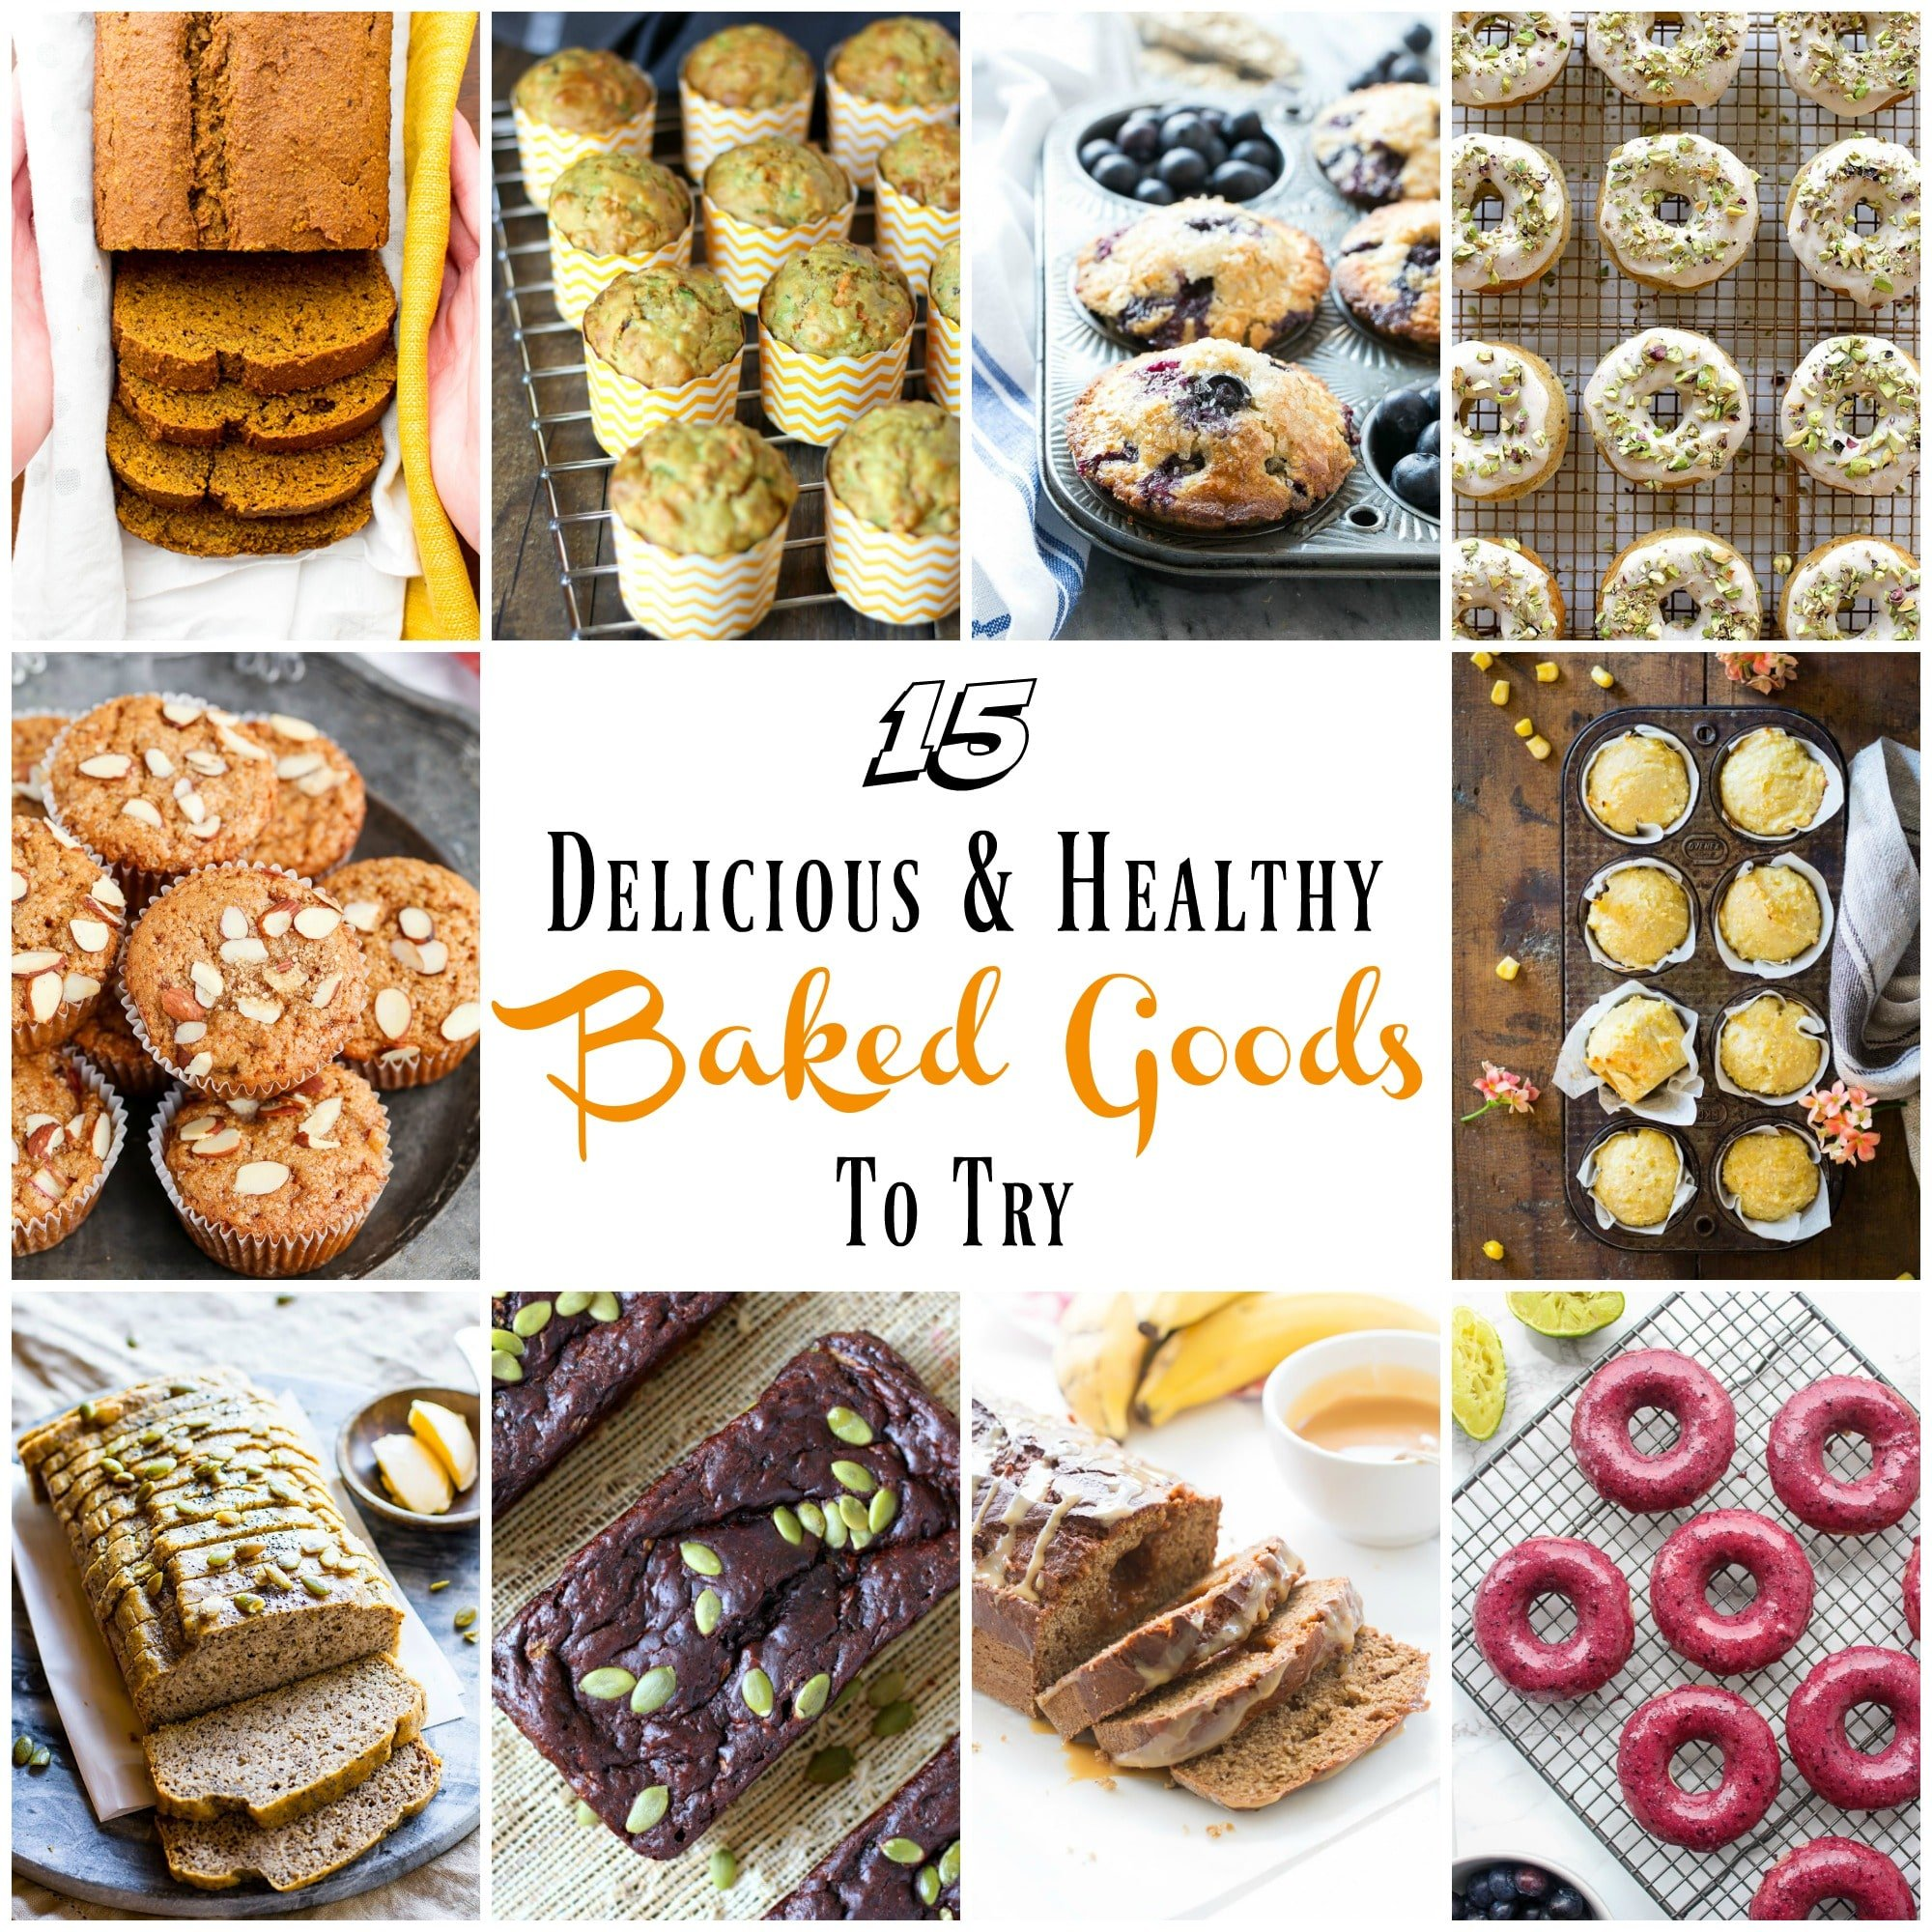 15 Delicious & Healthy Baked Goods To Try | gardeninthekitchen.com